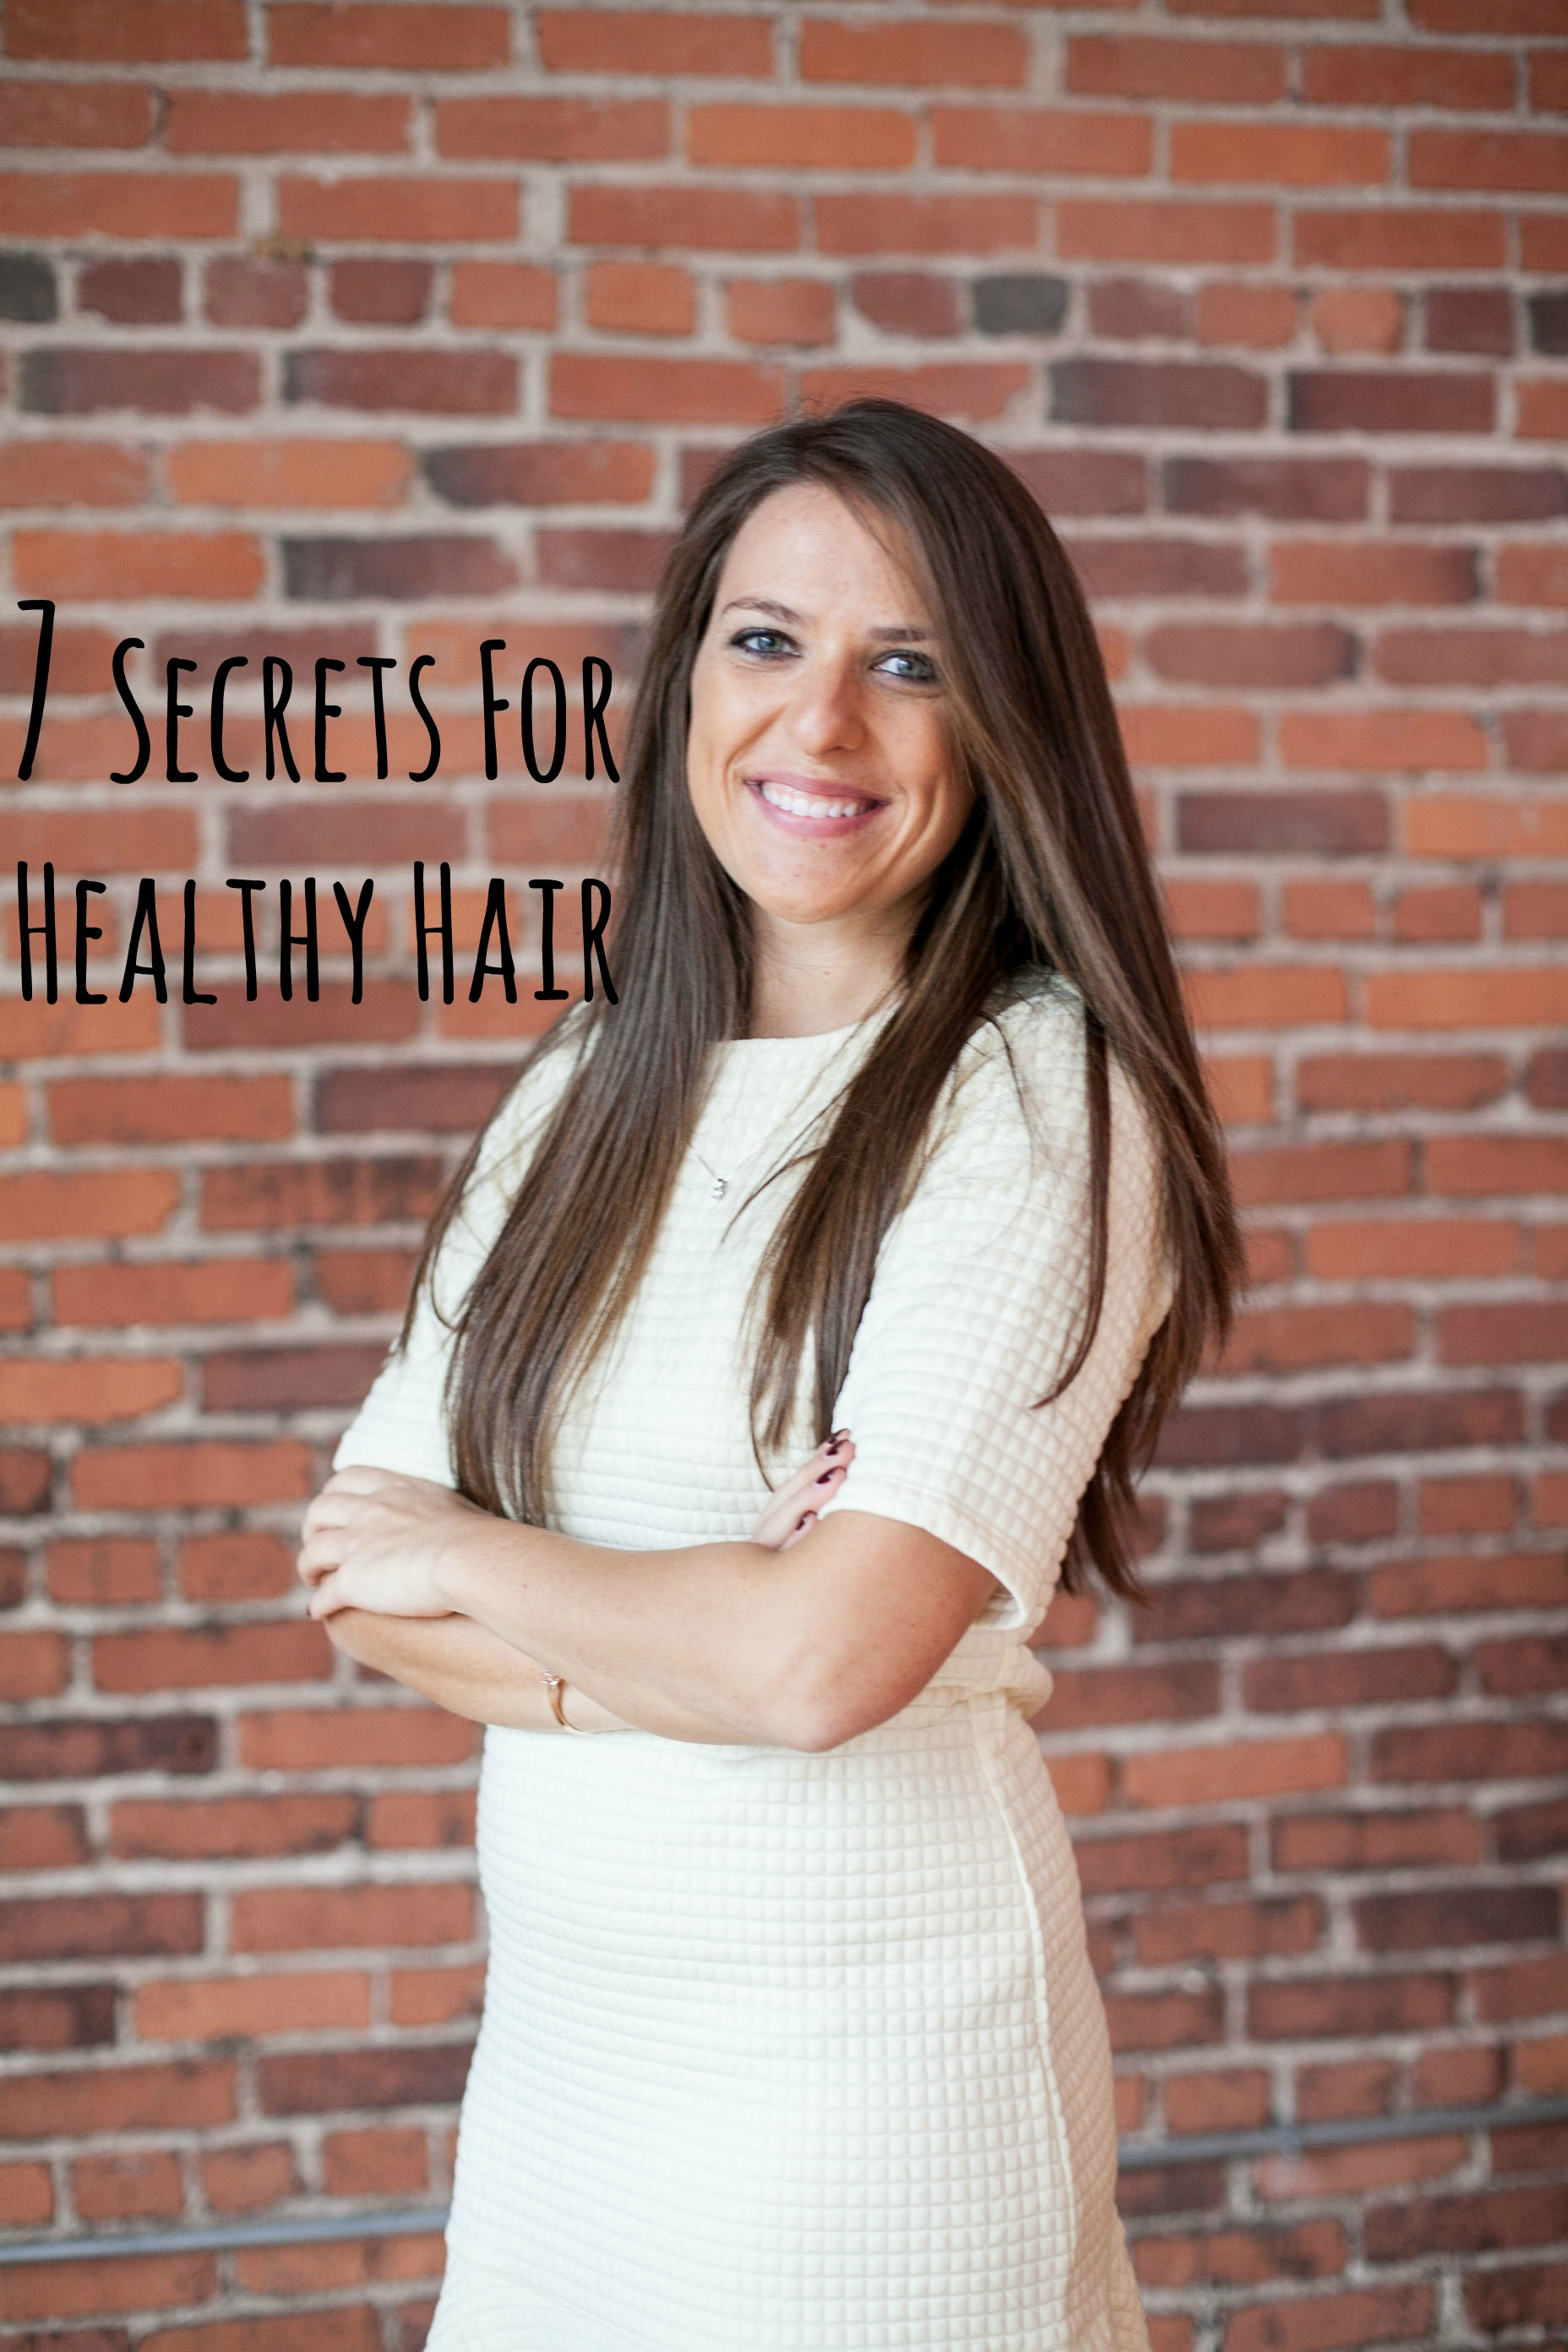 healthy hair secrets